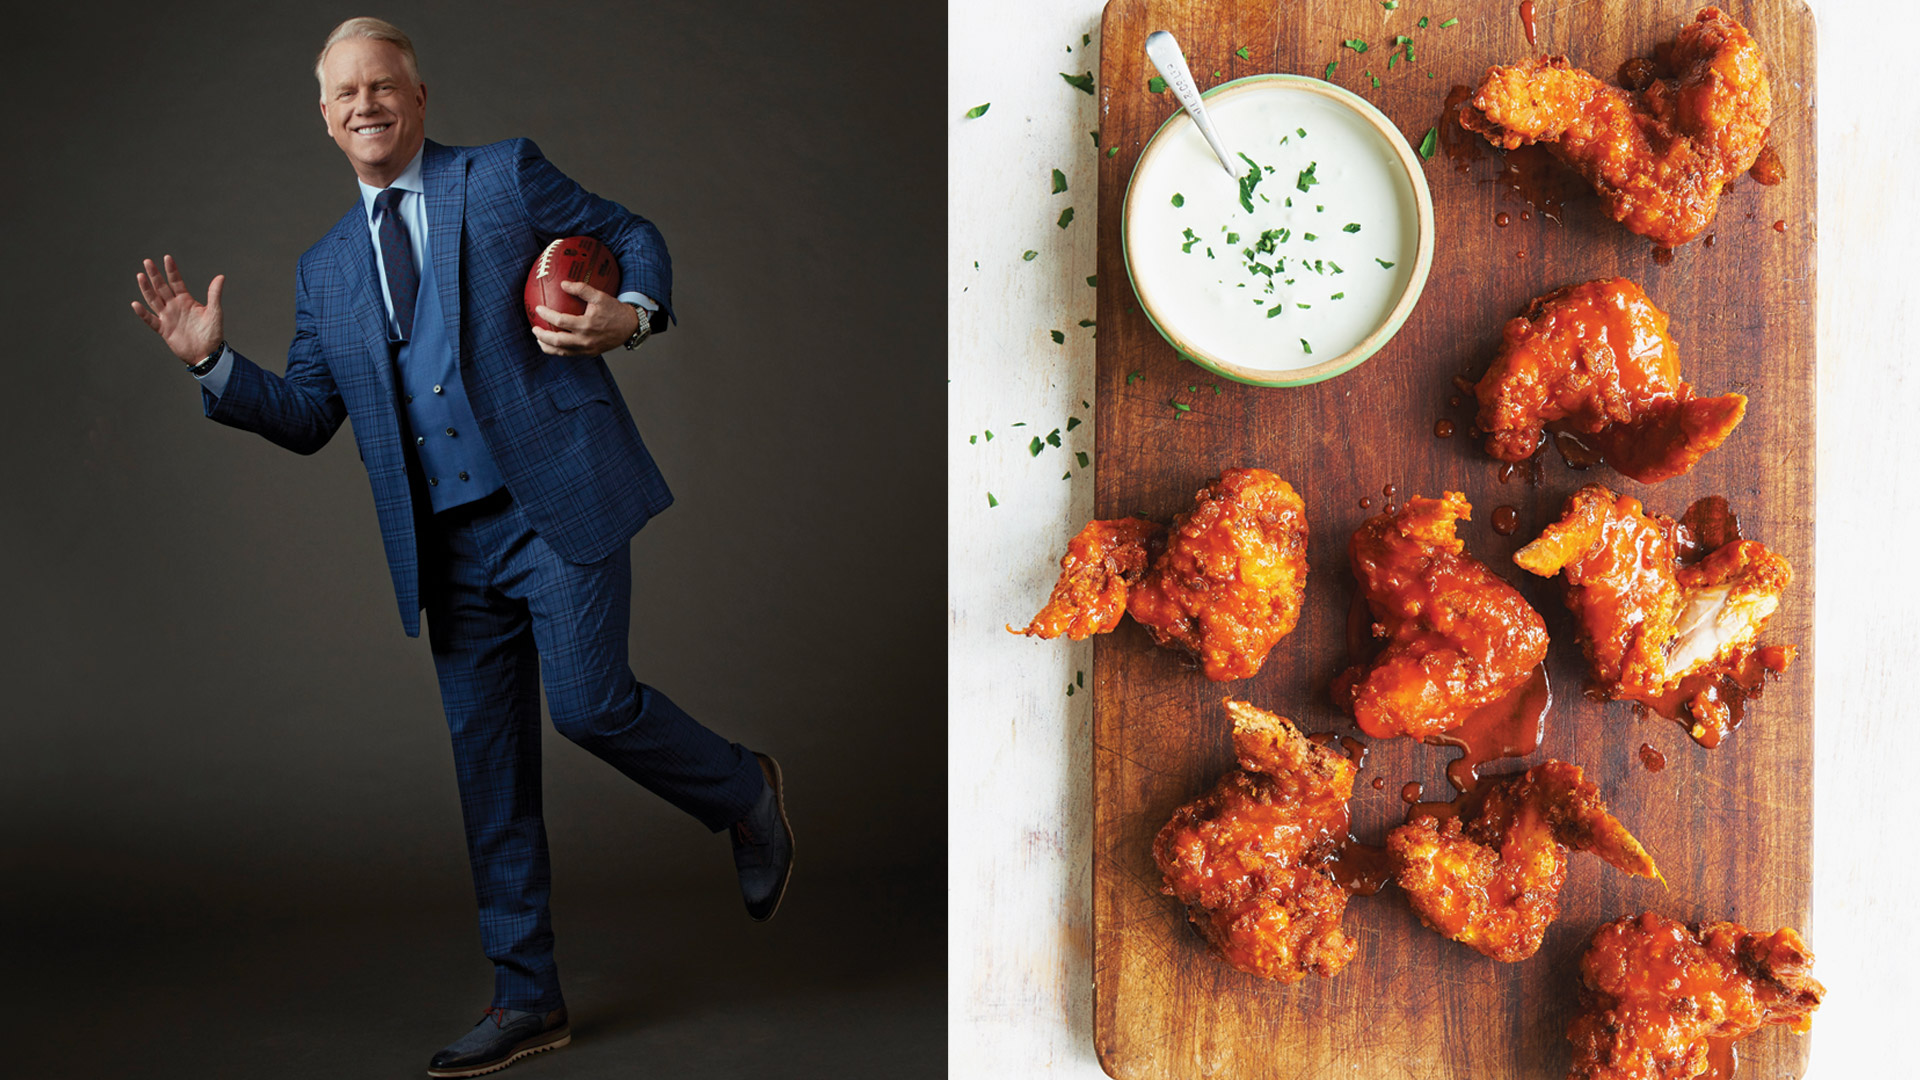 Boomer Esiason brings the heat—to his chicken wings.